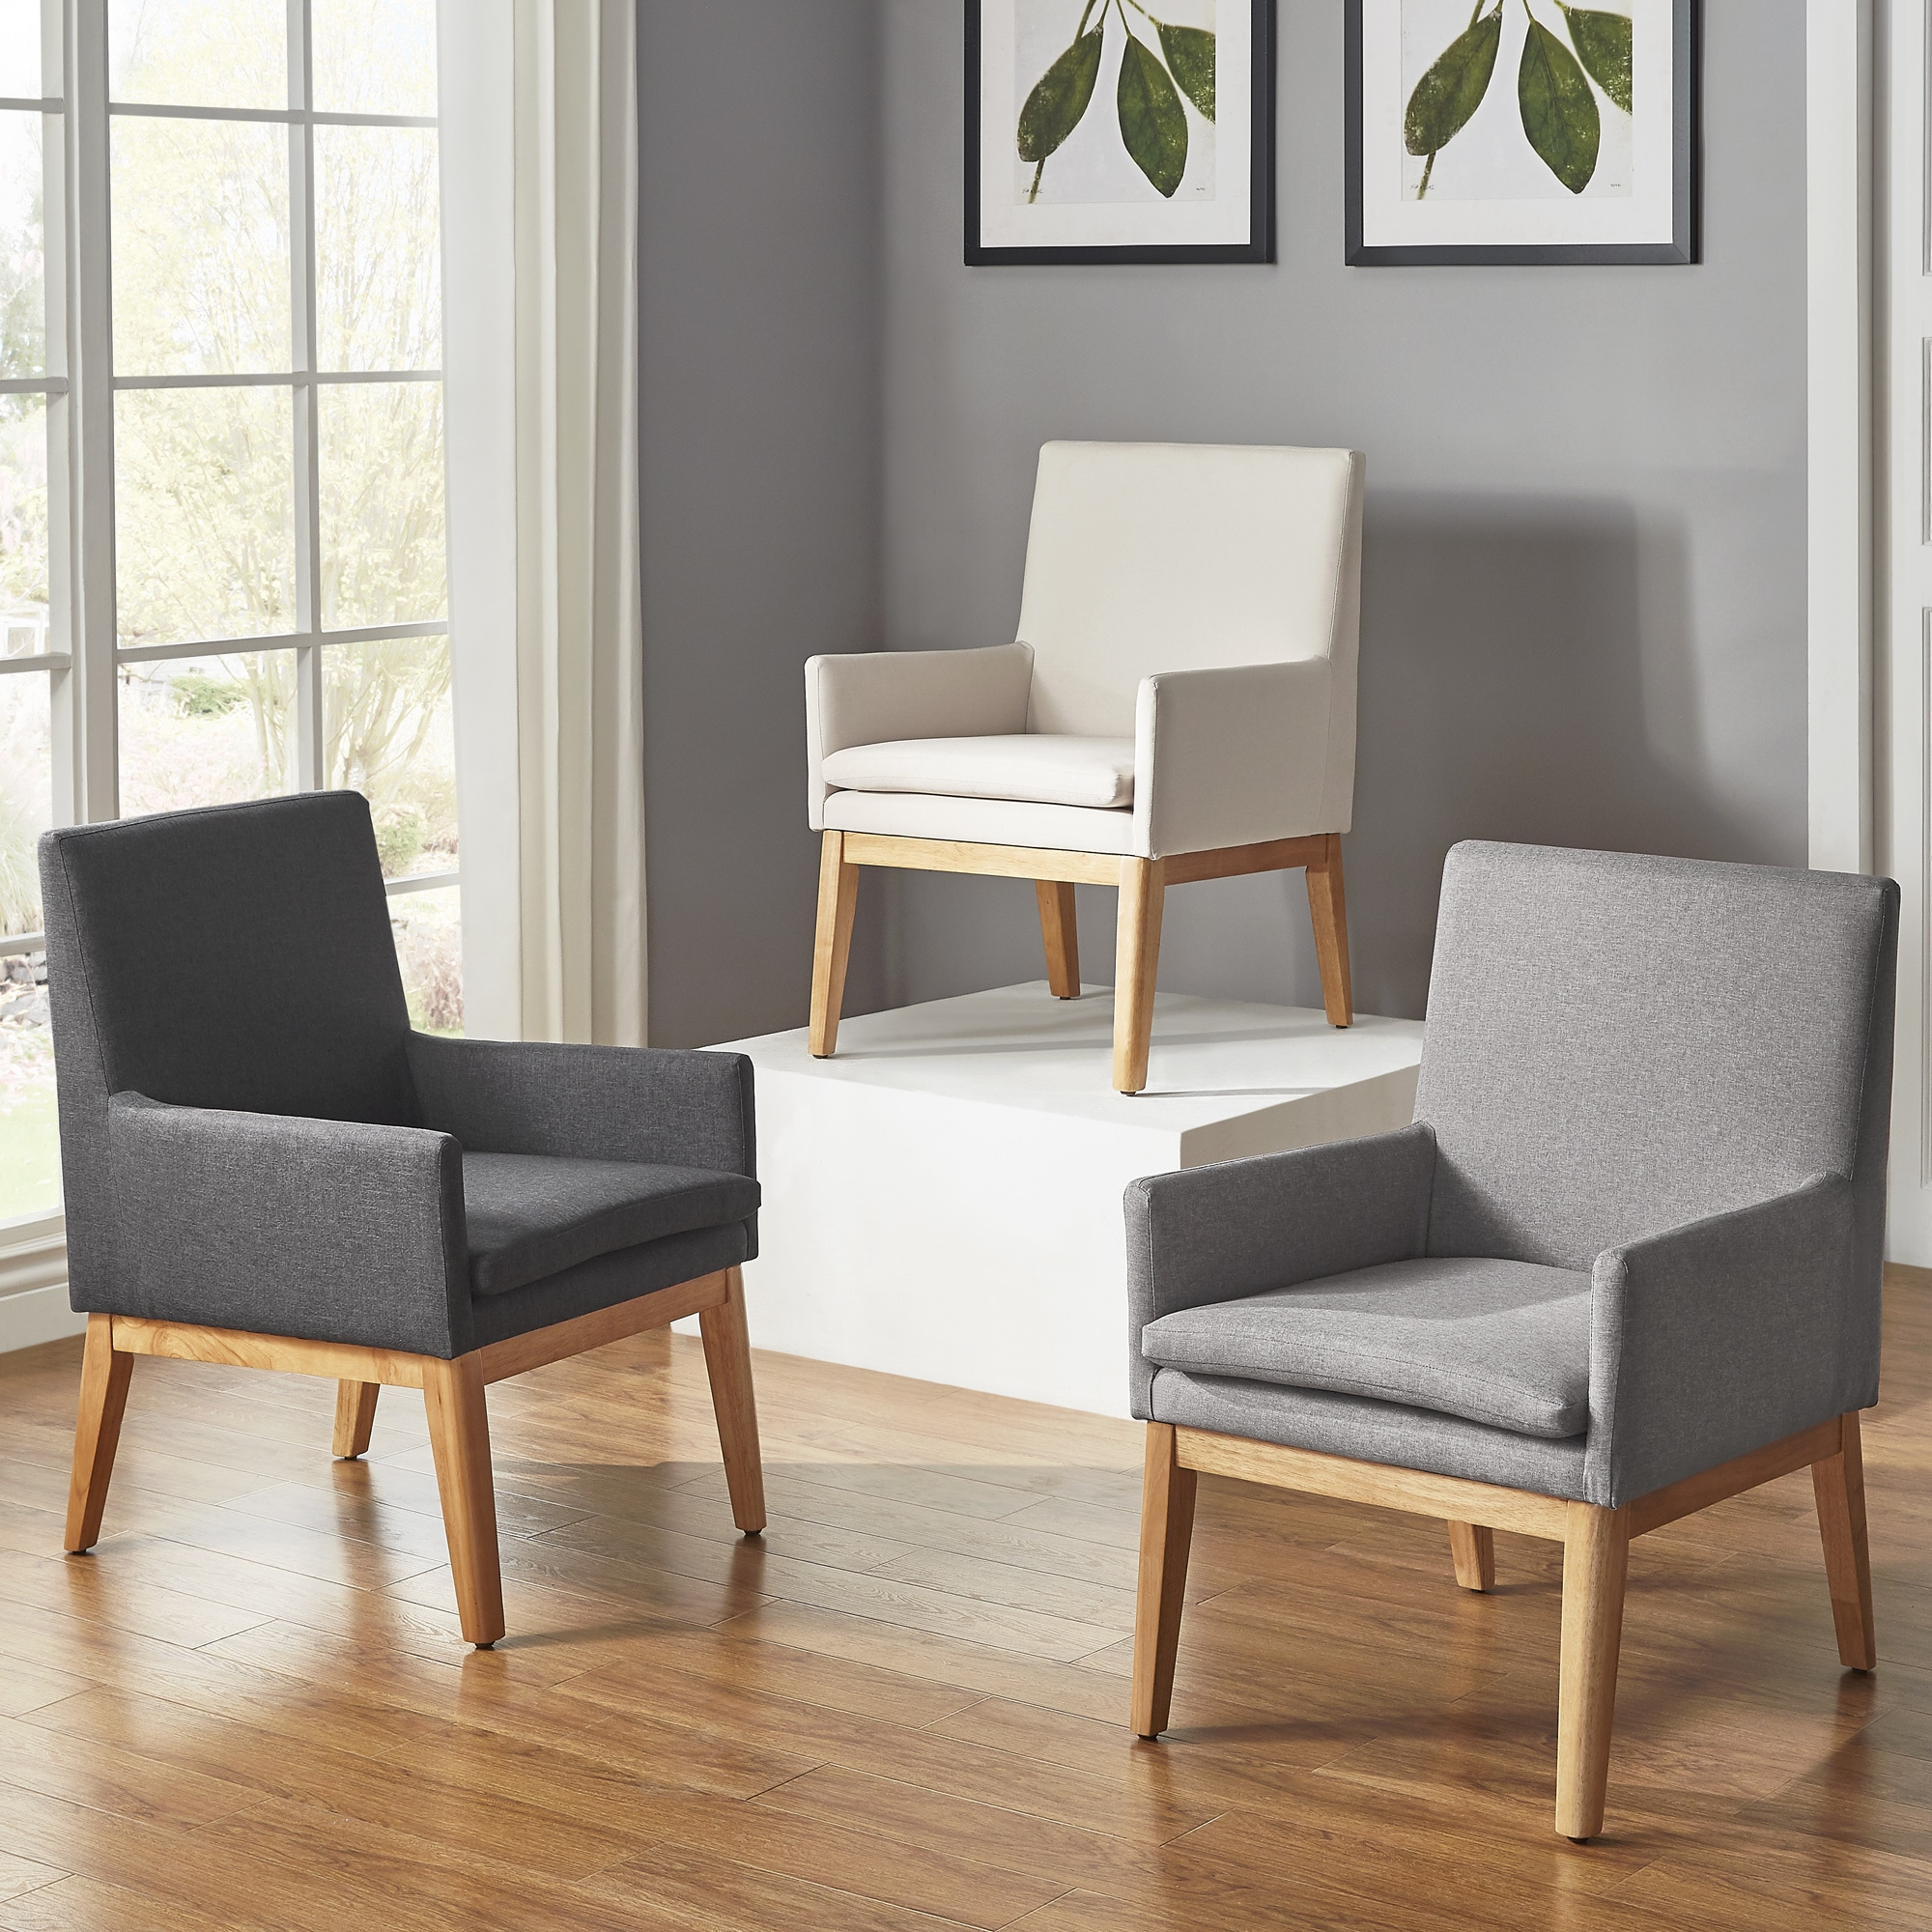 Parker Mid-Century Light Oak Accent Chairs (Set of 2) by iNSPIRE Q Modern -  Free Shipping Today - Overstock.com - 23269450